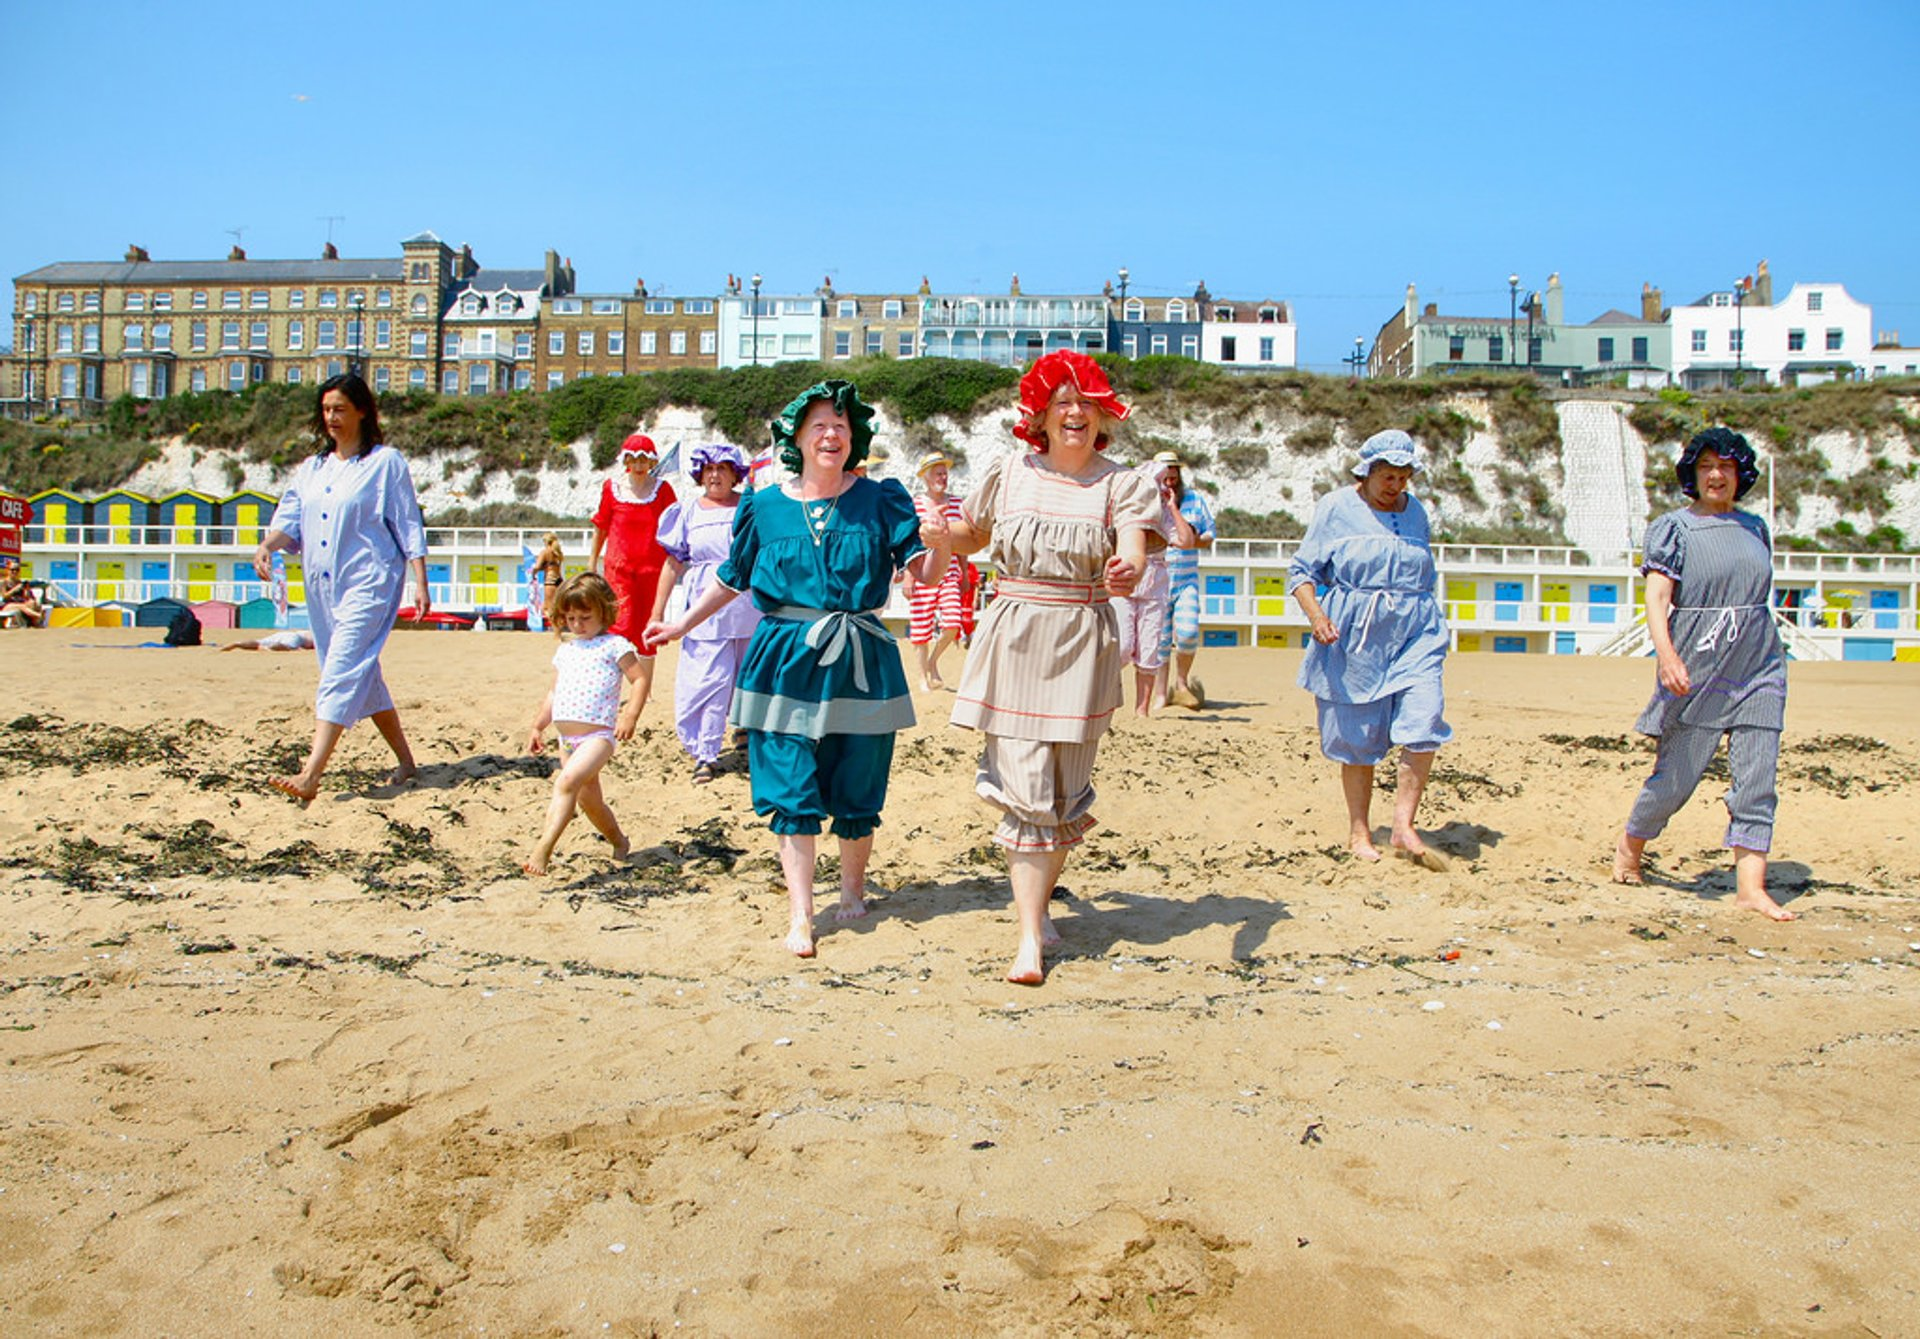 Best time to see Broadstairs Dickens Festival in England 2019